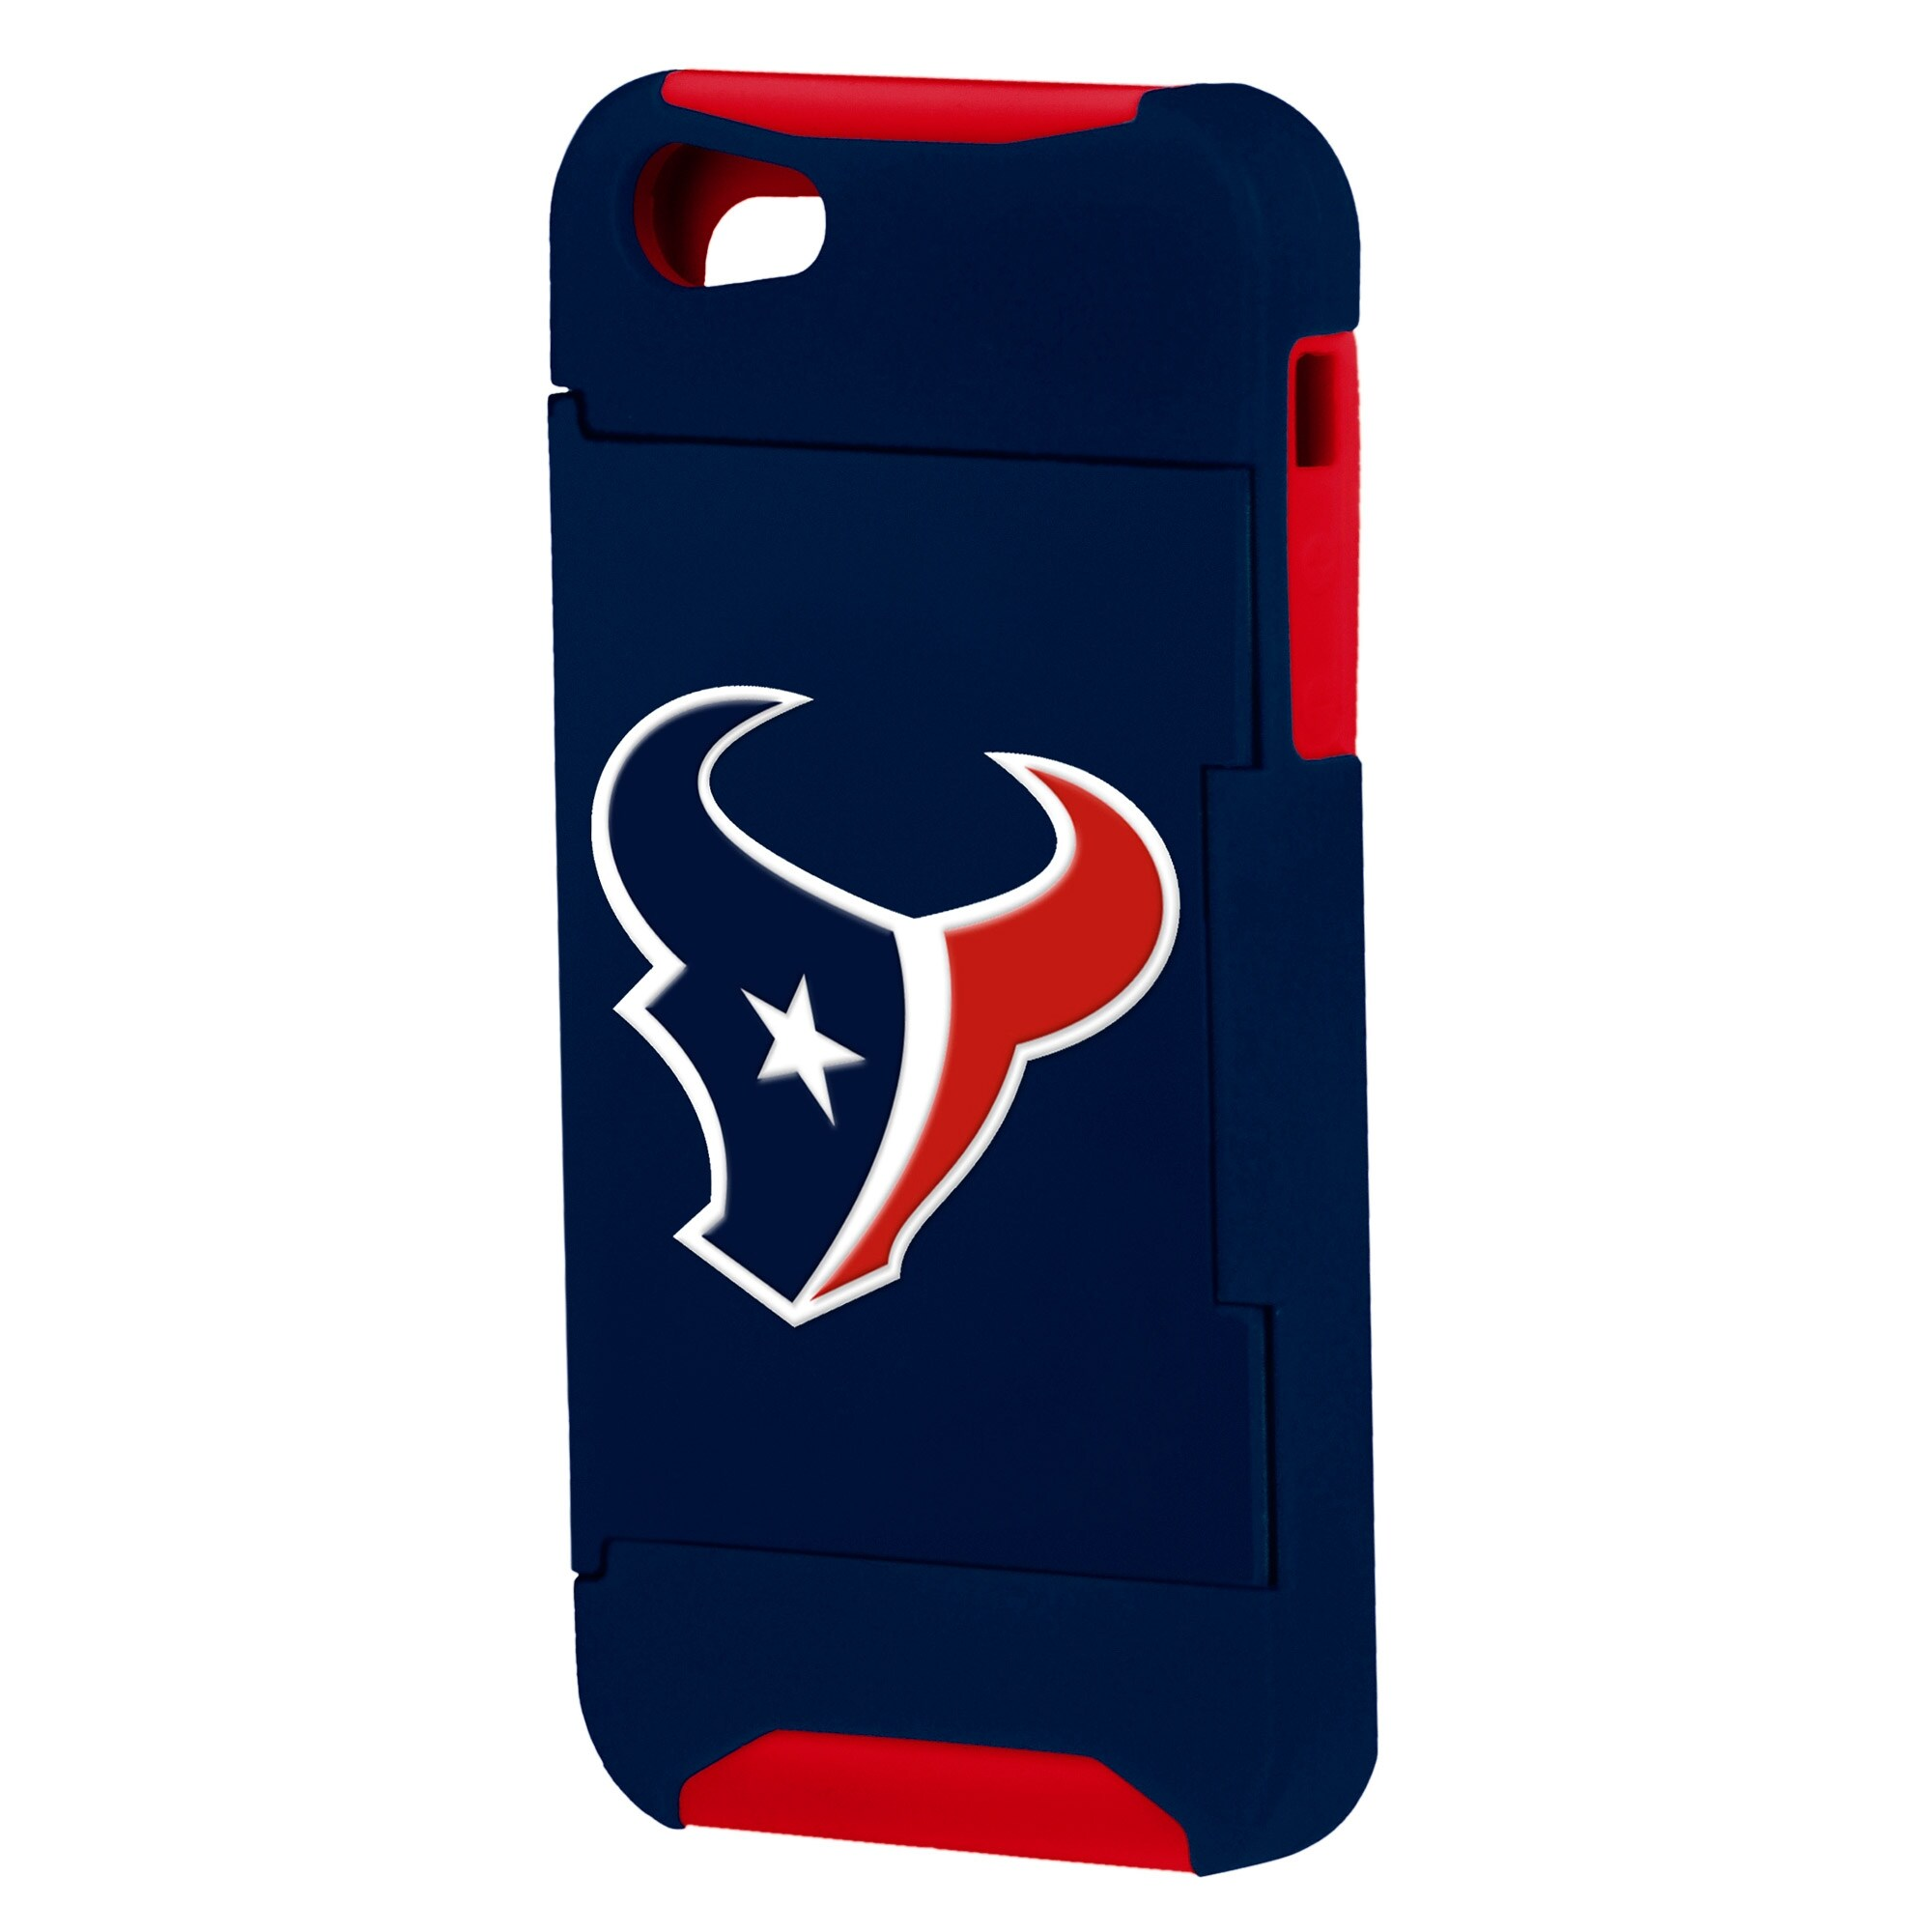 Houston Texans iPhone 5 Credit Card Case